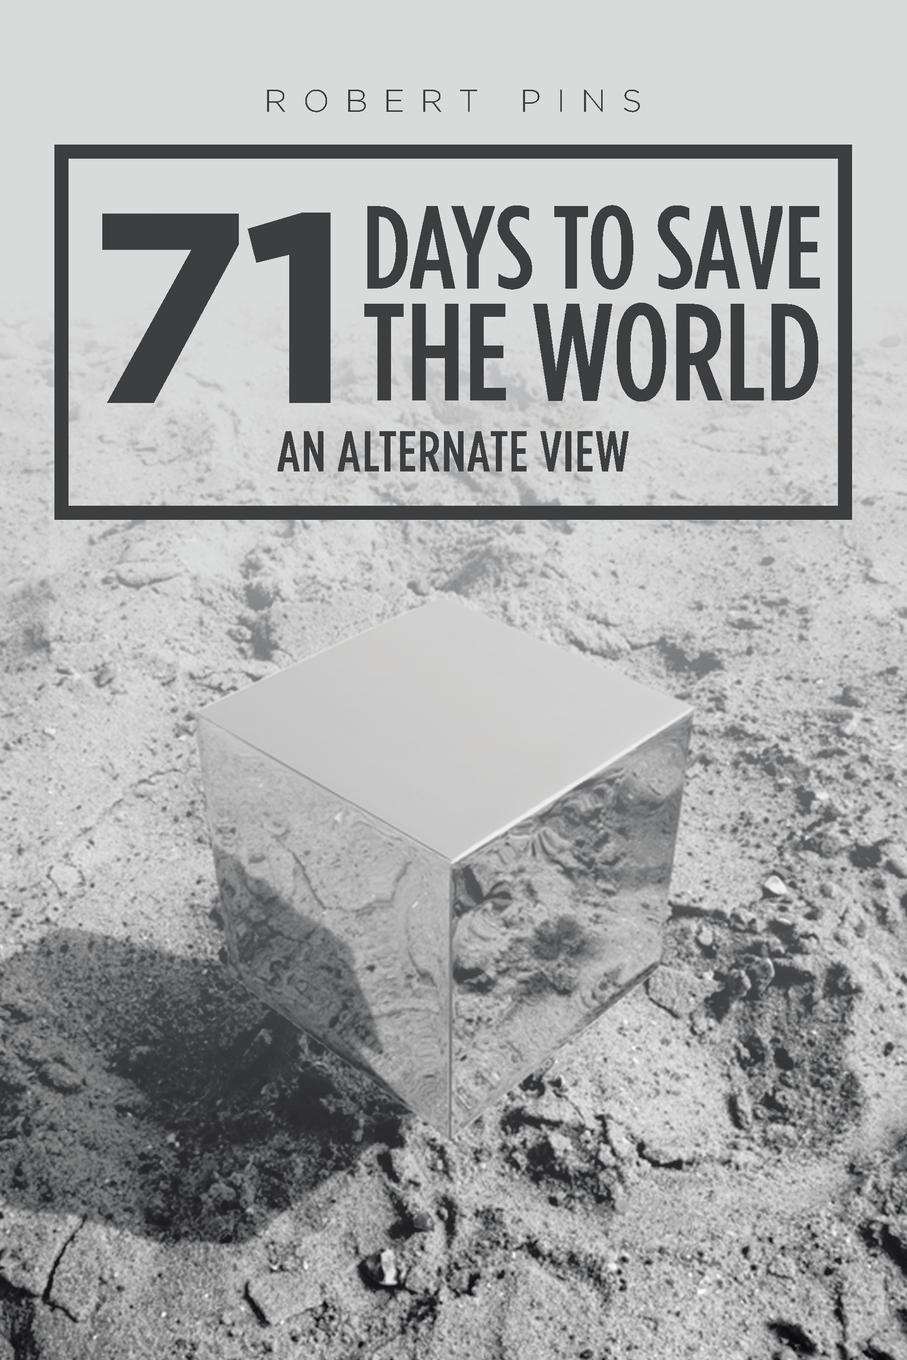 Robert Pins 71 Days to Save the World. An Alternate View